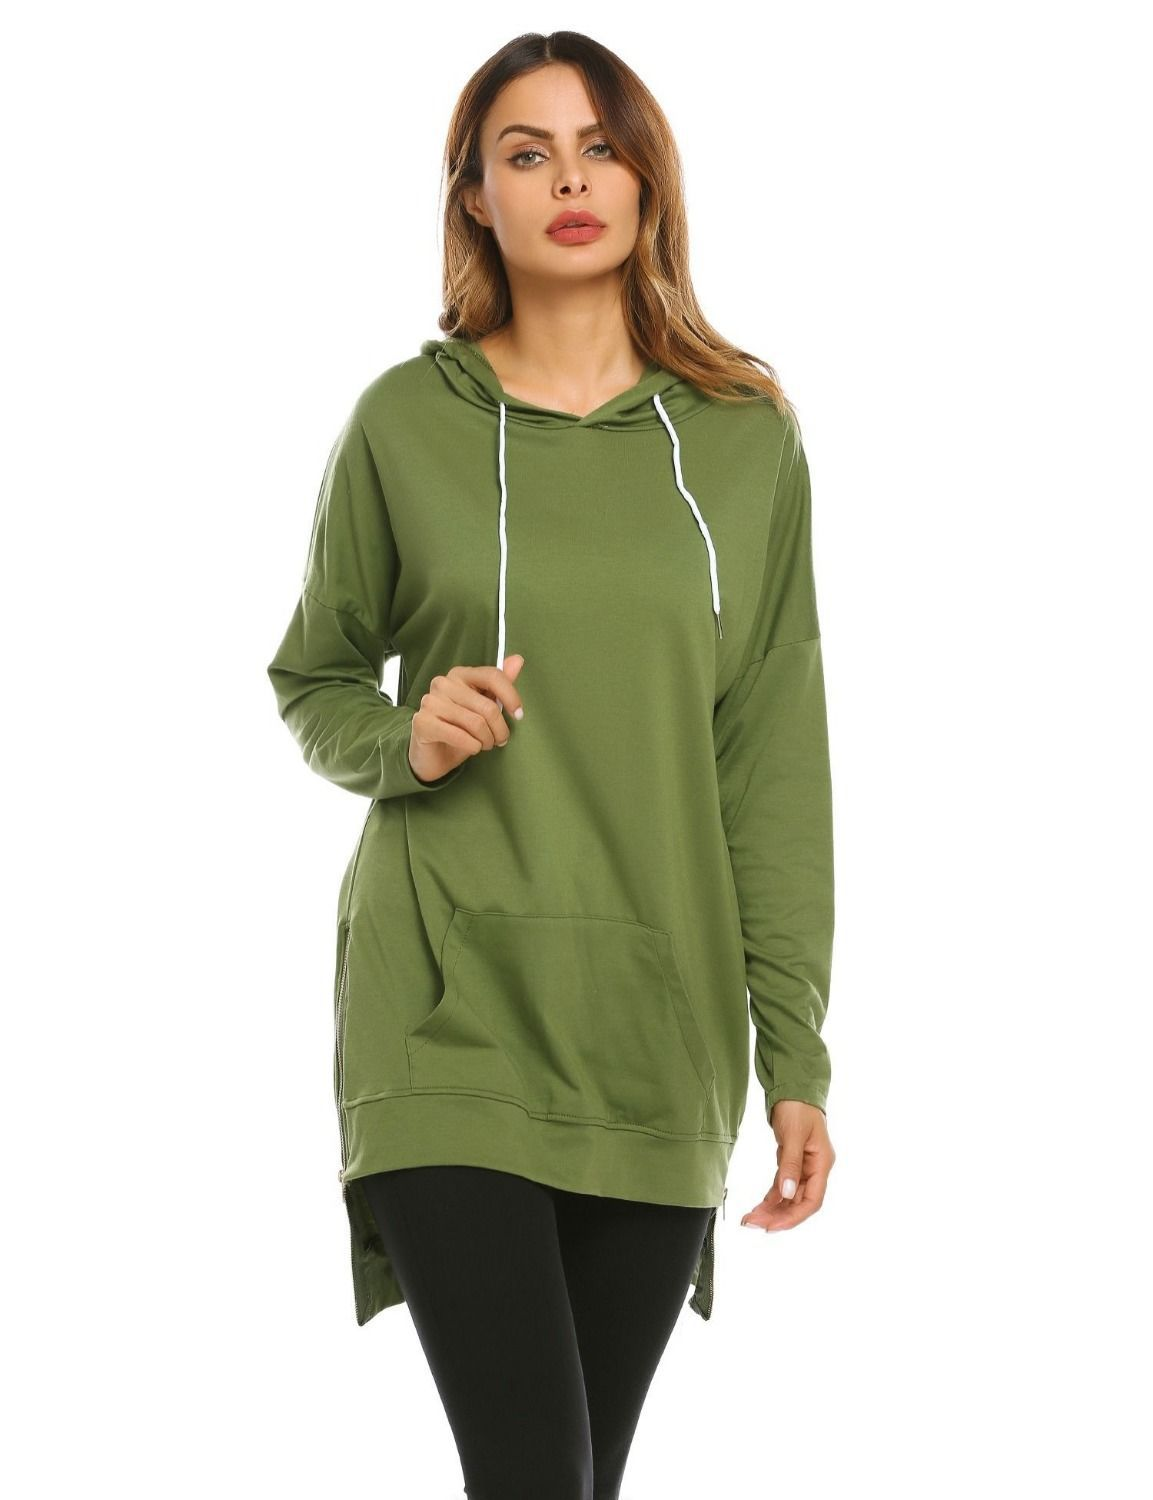 harajuku oversized hoodie plus size women korean clothes pink clothing festival 2019 casual long solid pullovers sweatshirt in Hoodies amp Sweatshirts from Women 39 s Clothing